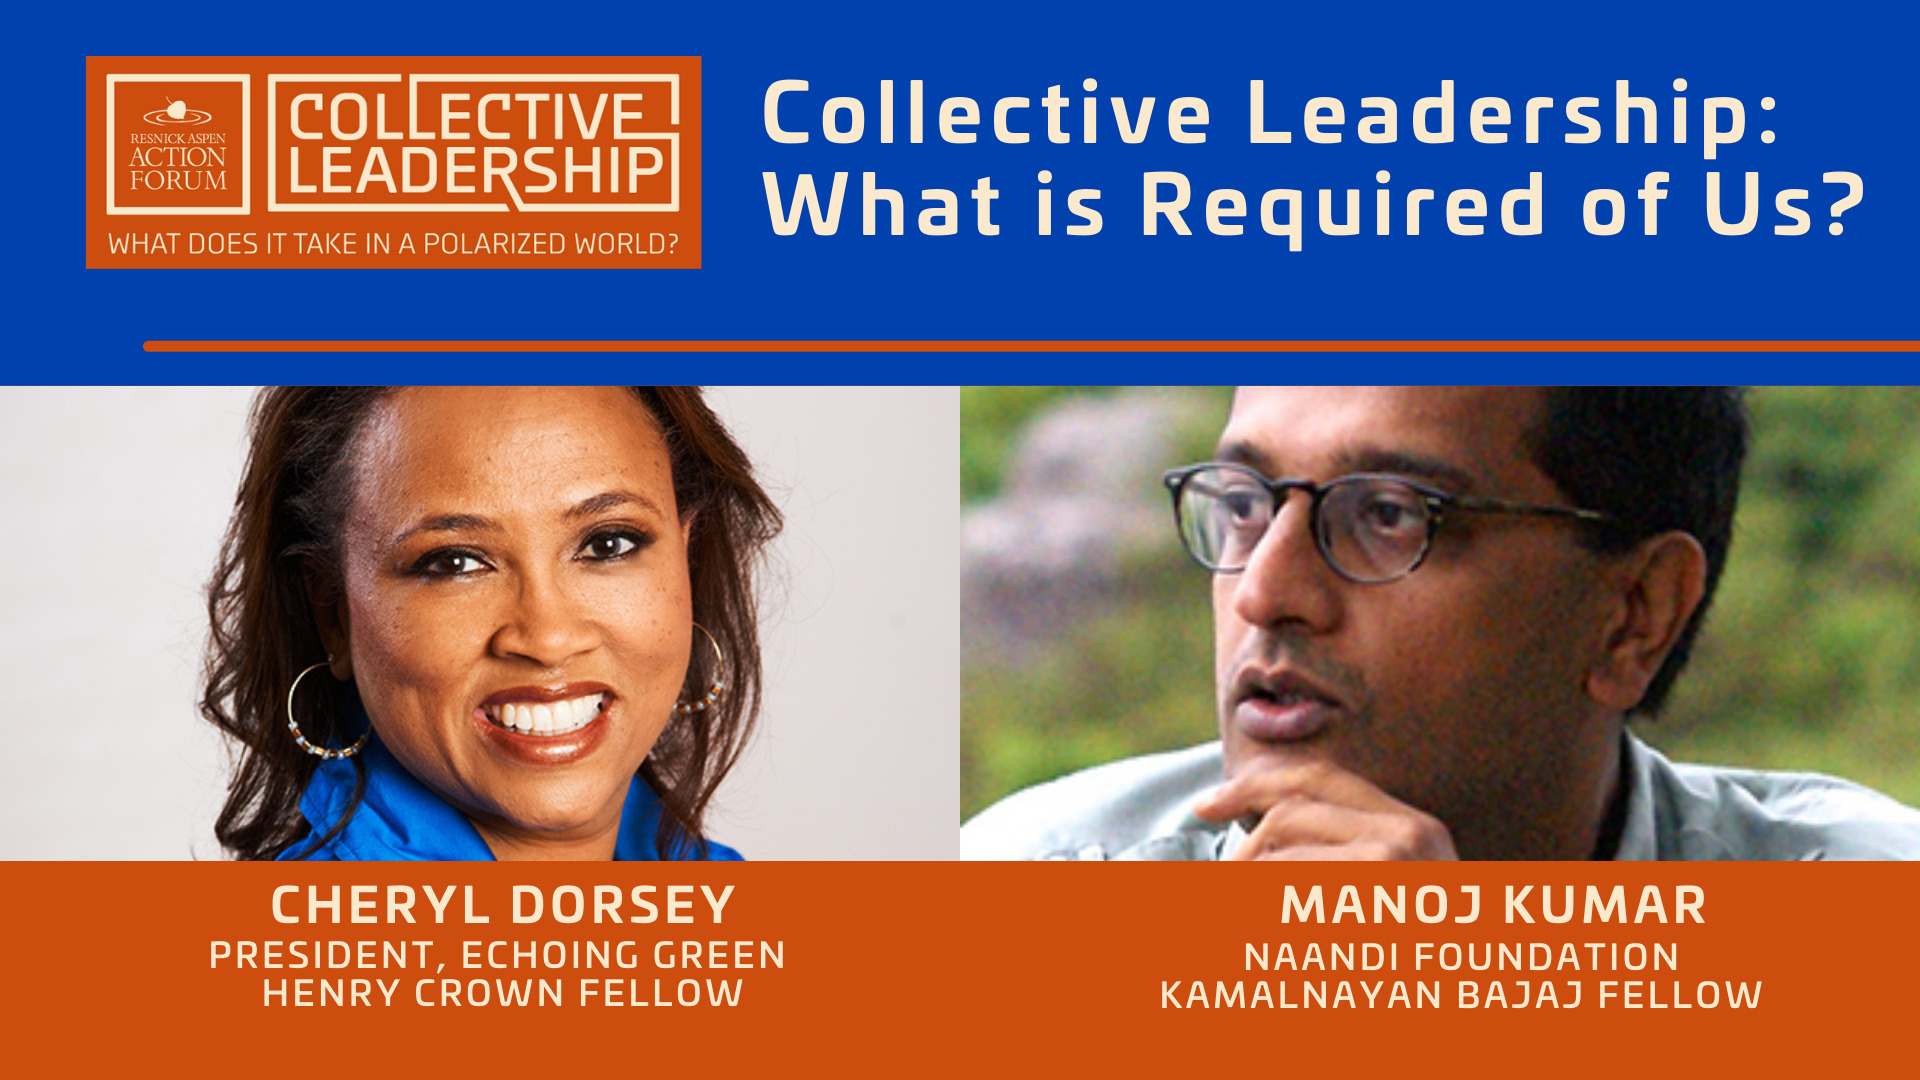 Collective Leadership: What is Required of Us?